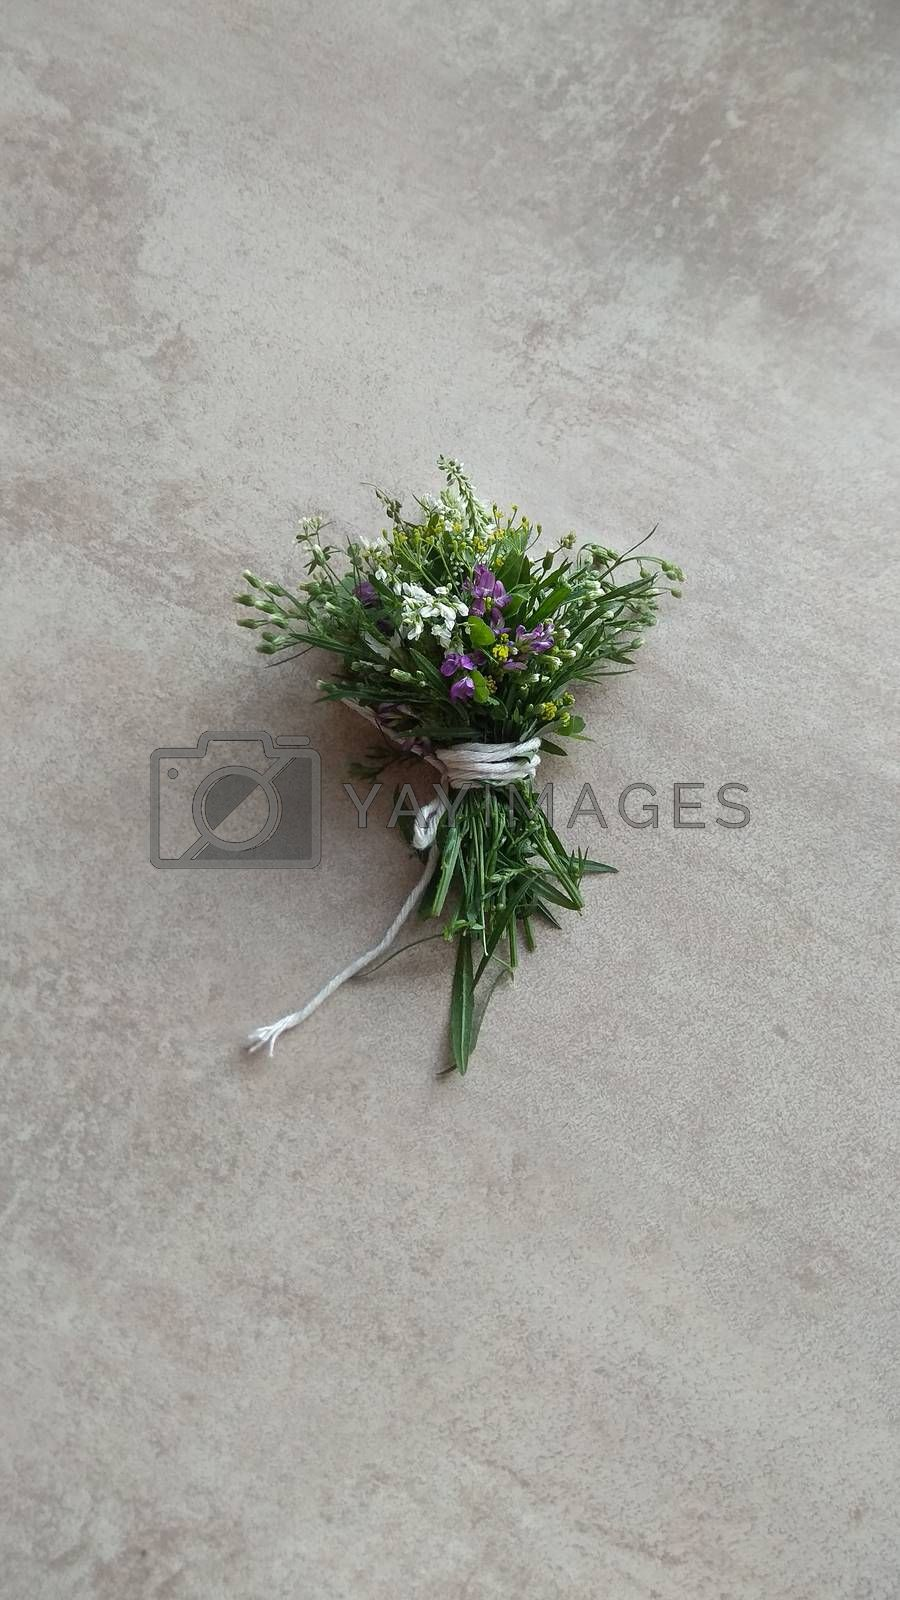 Festive wild flowers composition on the grey background. Overhead view.